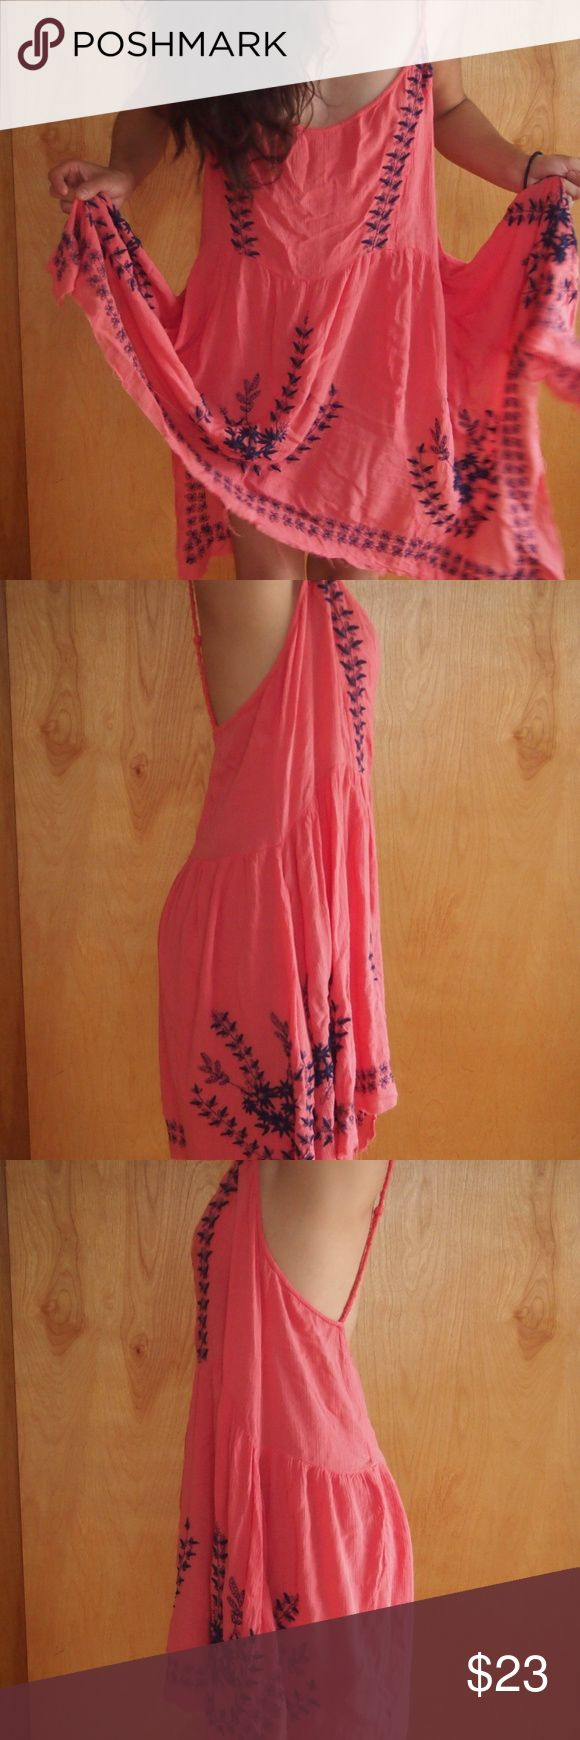 Free People Coral Pink Embroidered Dress Free People Coral Sundress with braided trapeze back and blue embroidery. Long, flowy and super comfortable. Frayed at the ends. Super Cute! Free People Dresses Midi